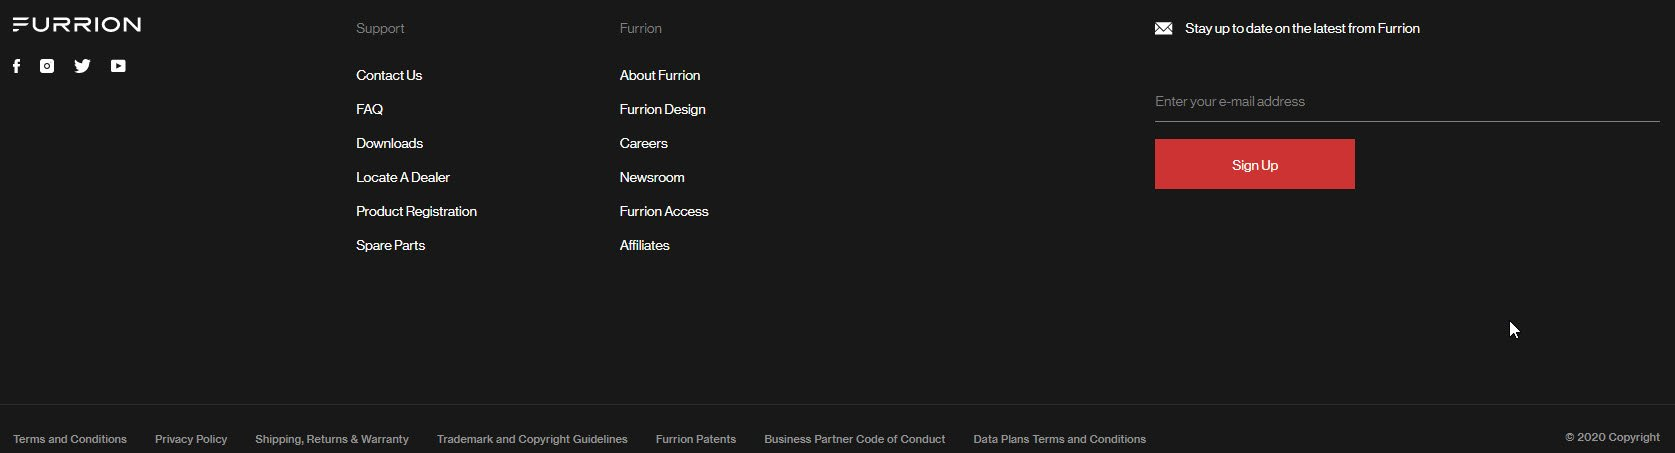 furrion website footer navigation example call to action